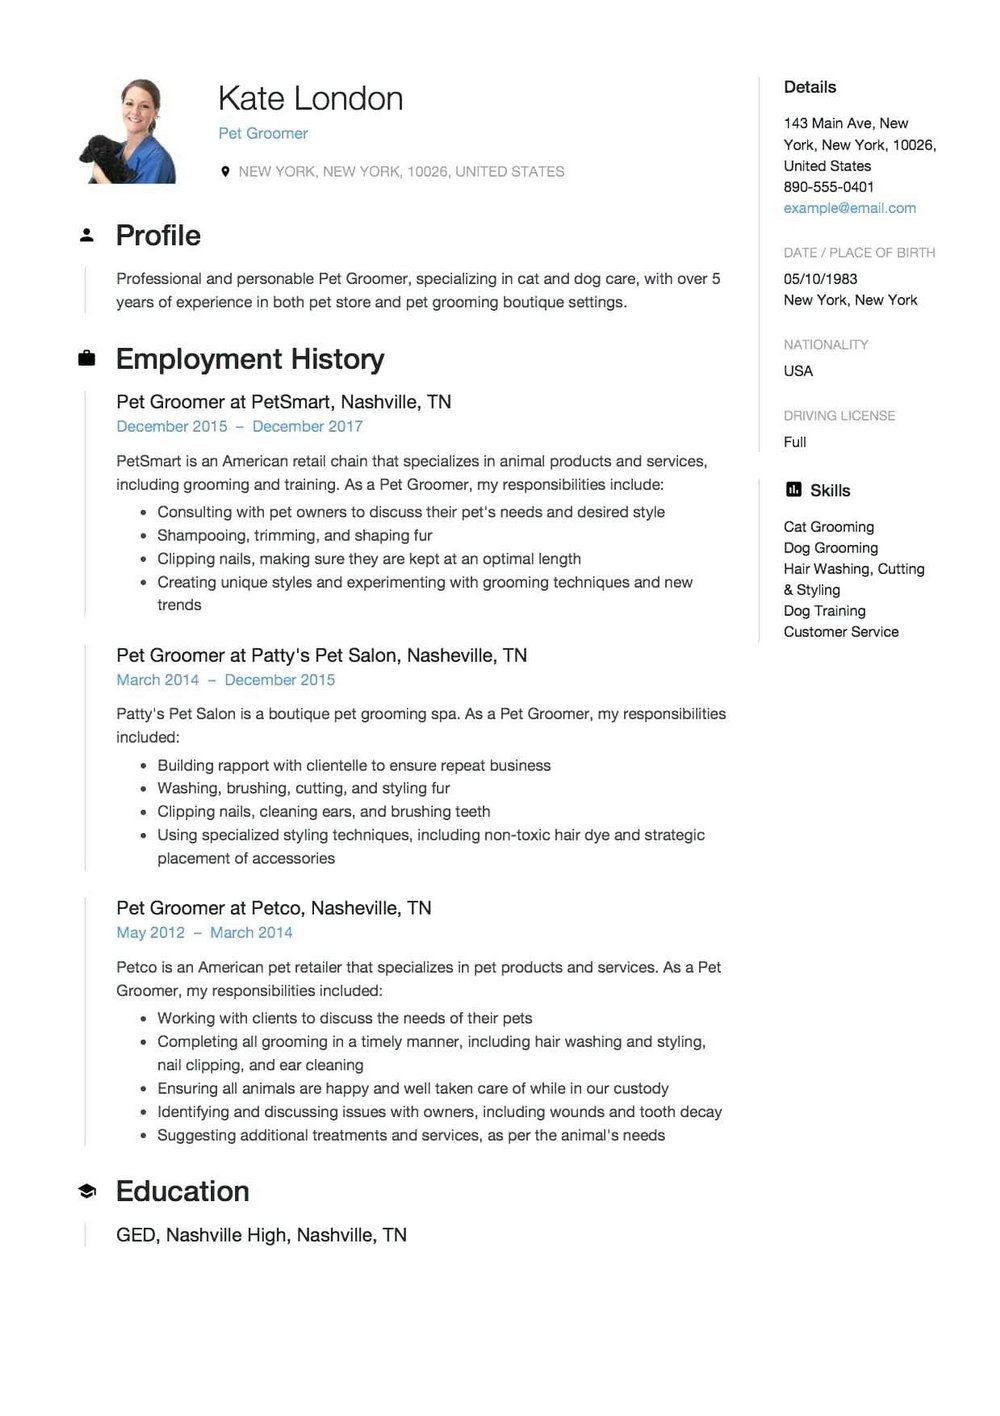 Normal Resume Format Download In Ms Word 2007